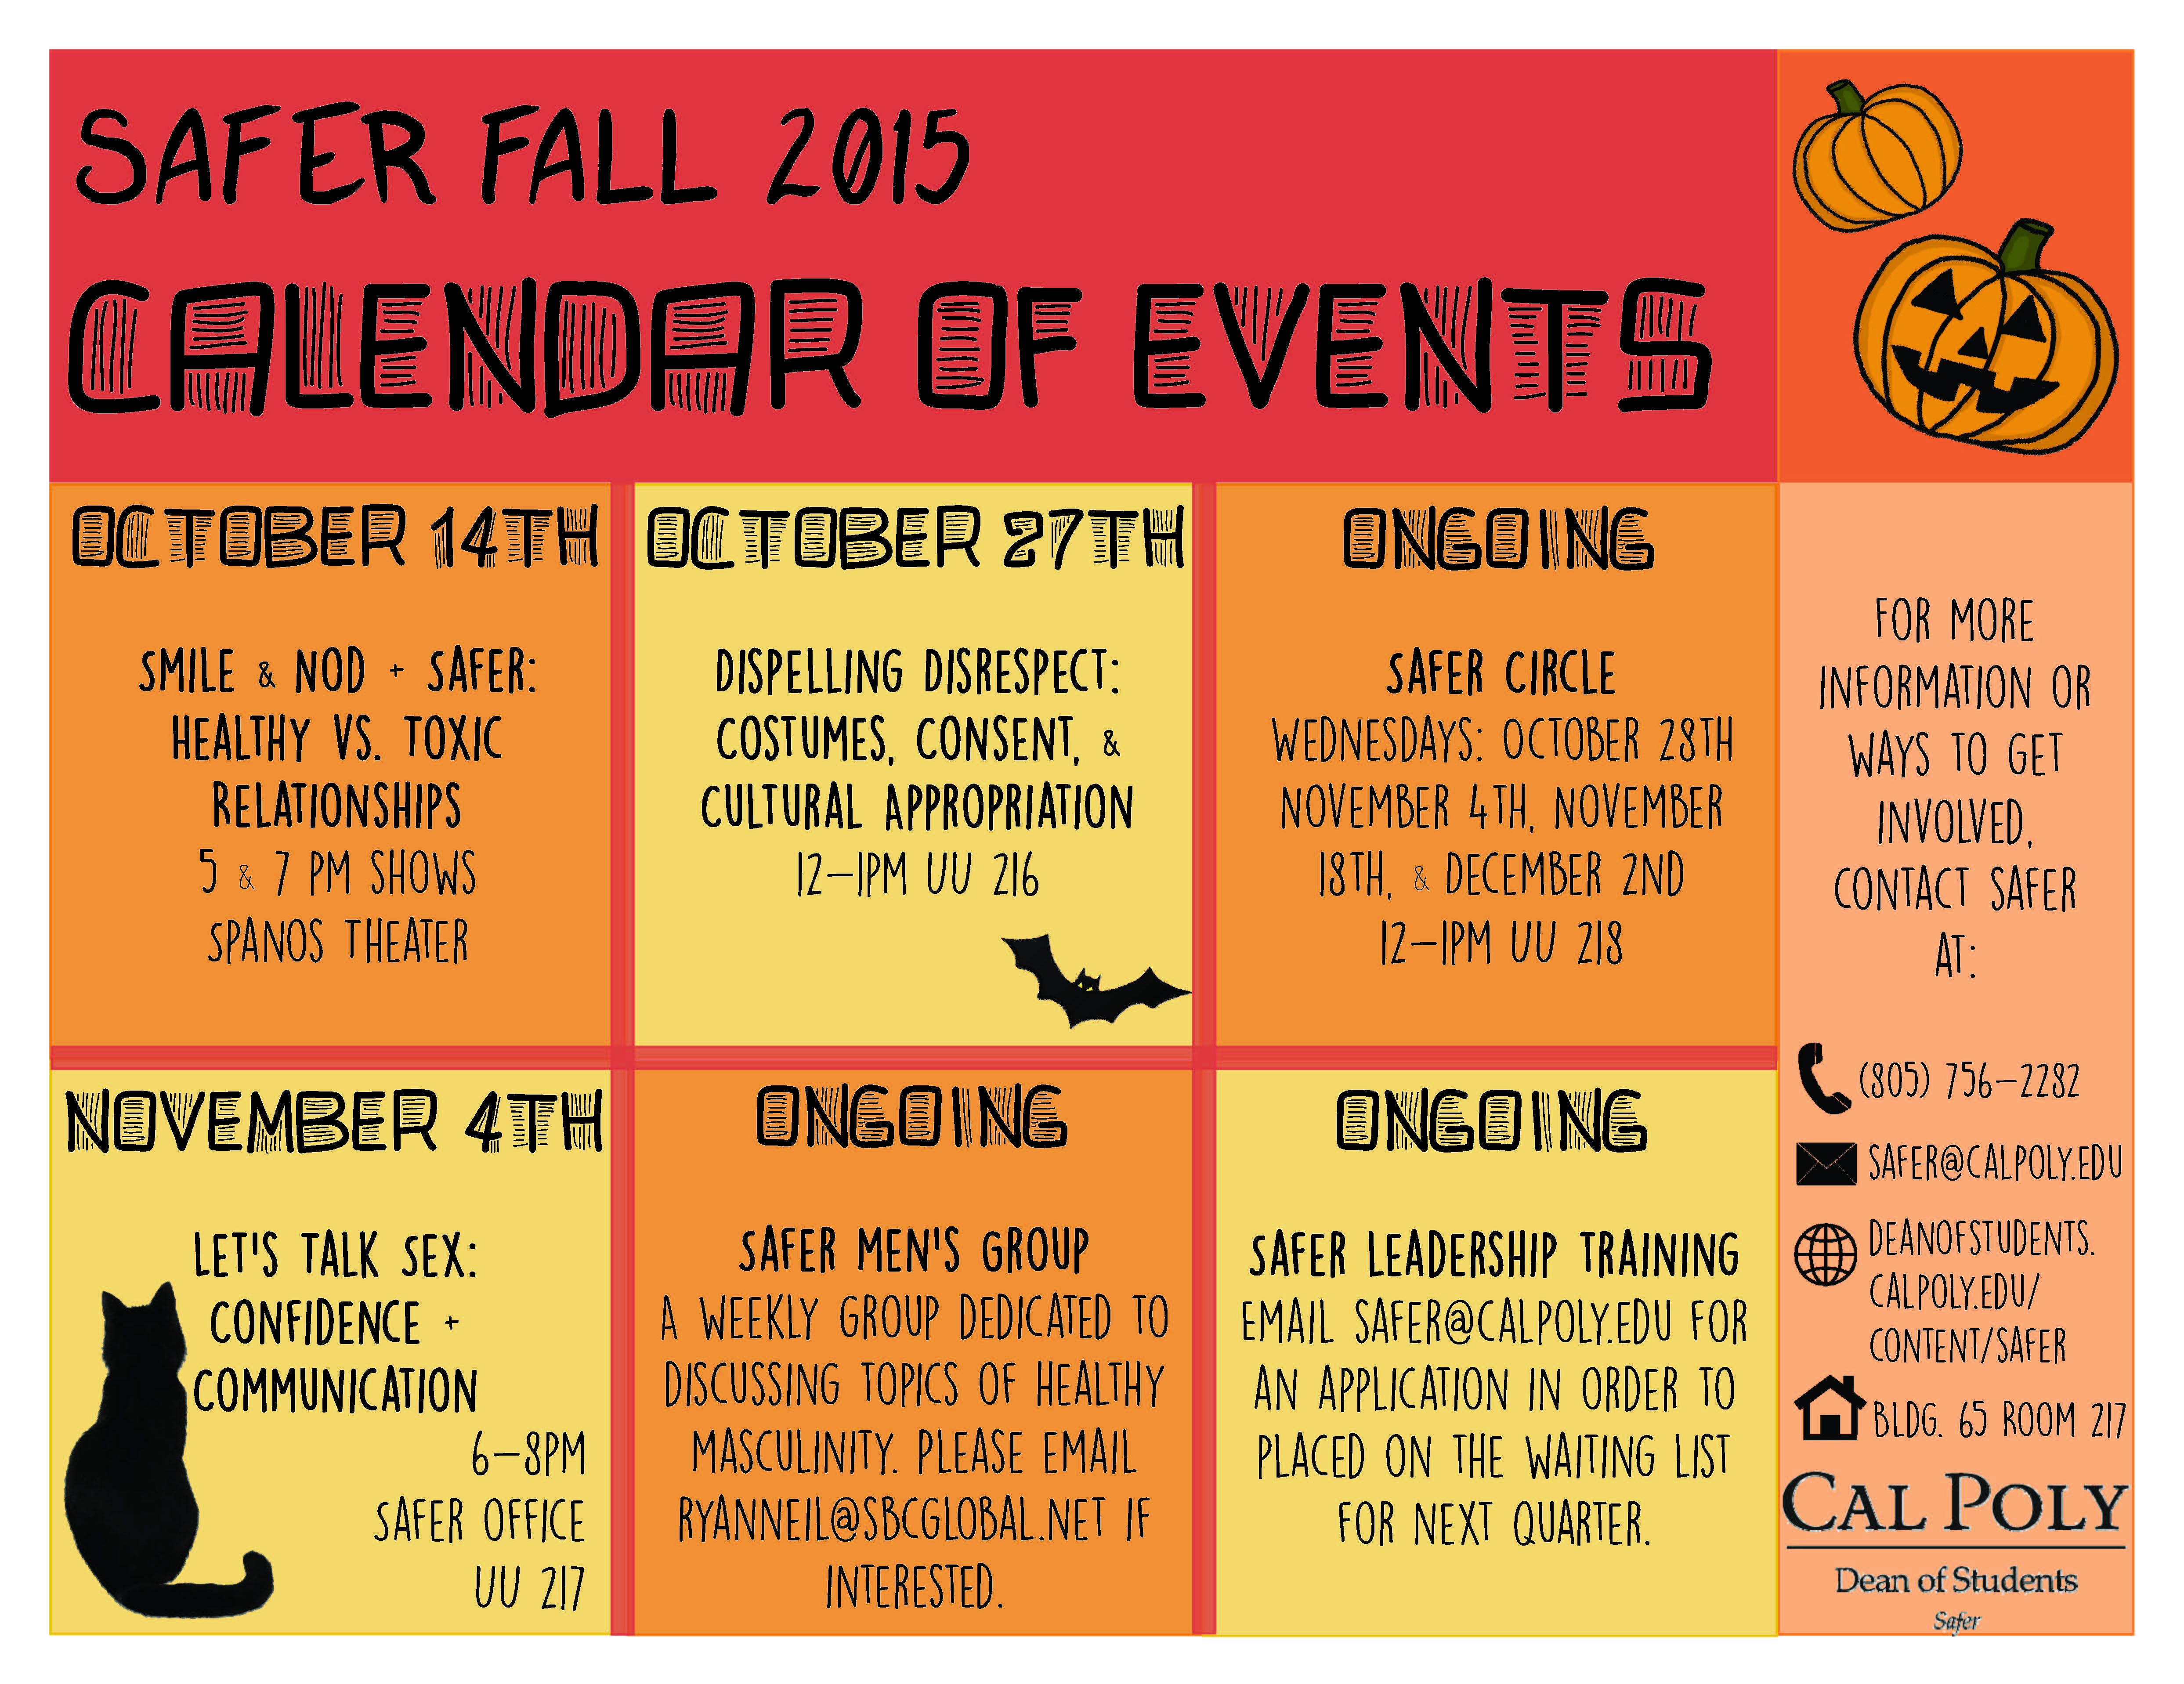 Safer Fall 2015, Calendar Of Events. Dates listed below.